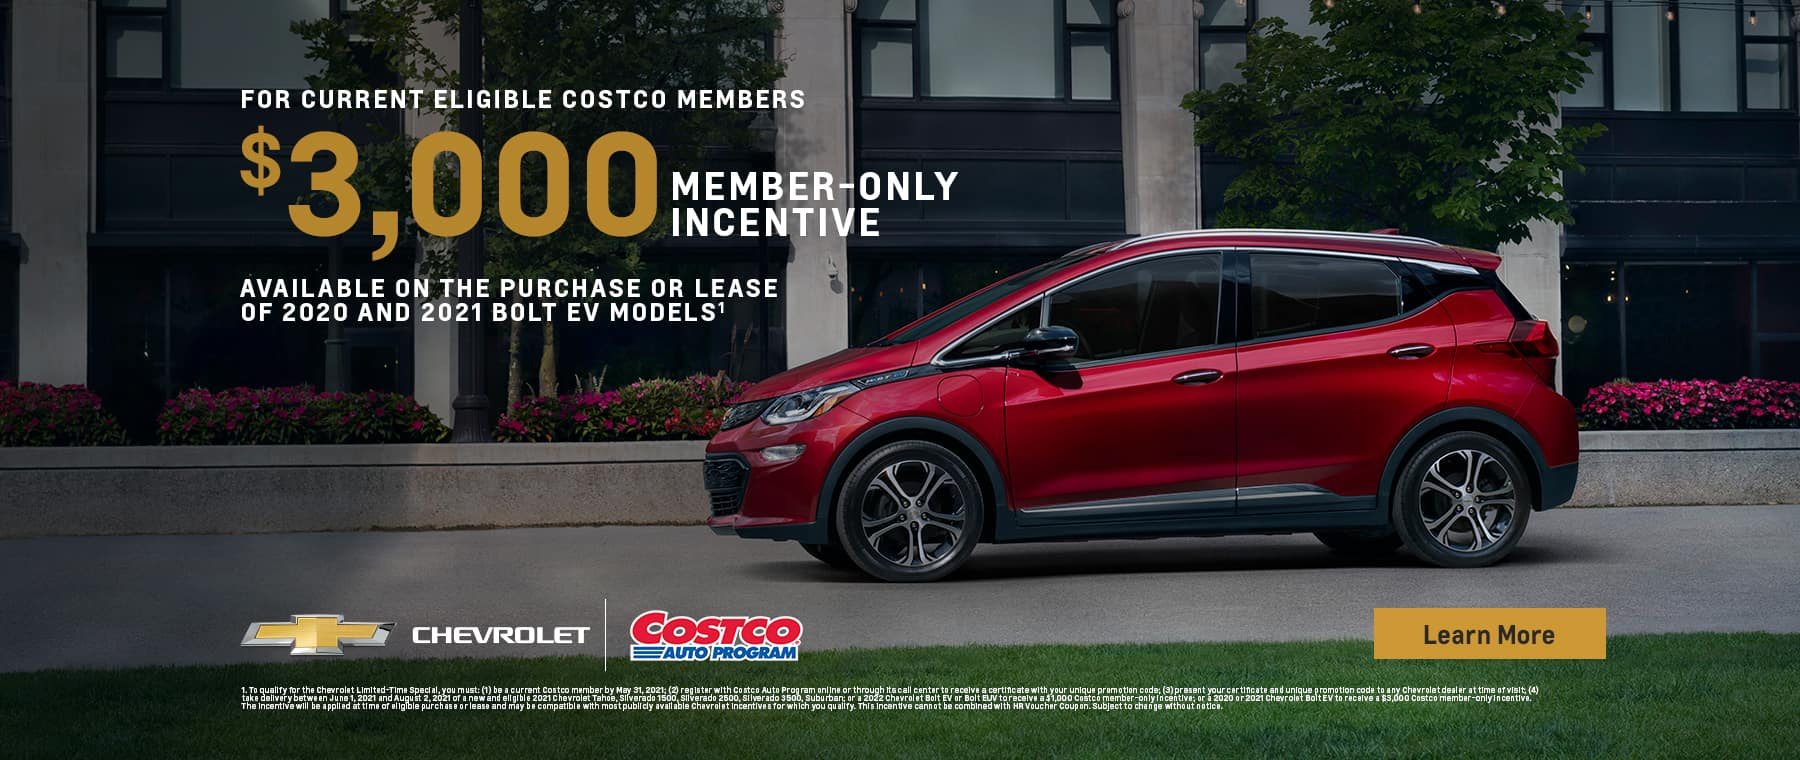 $3,000 Member Only Incentive